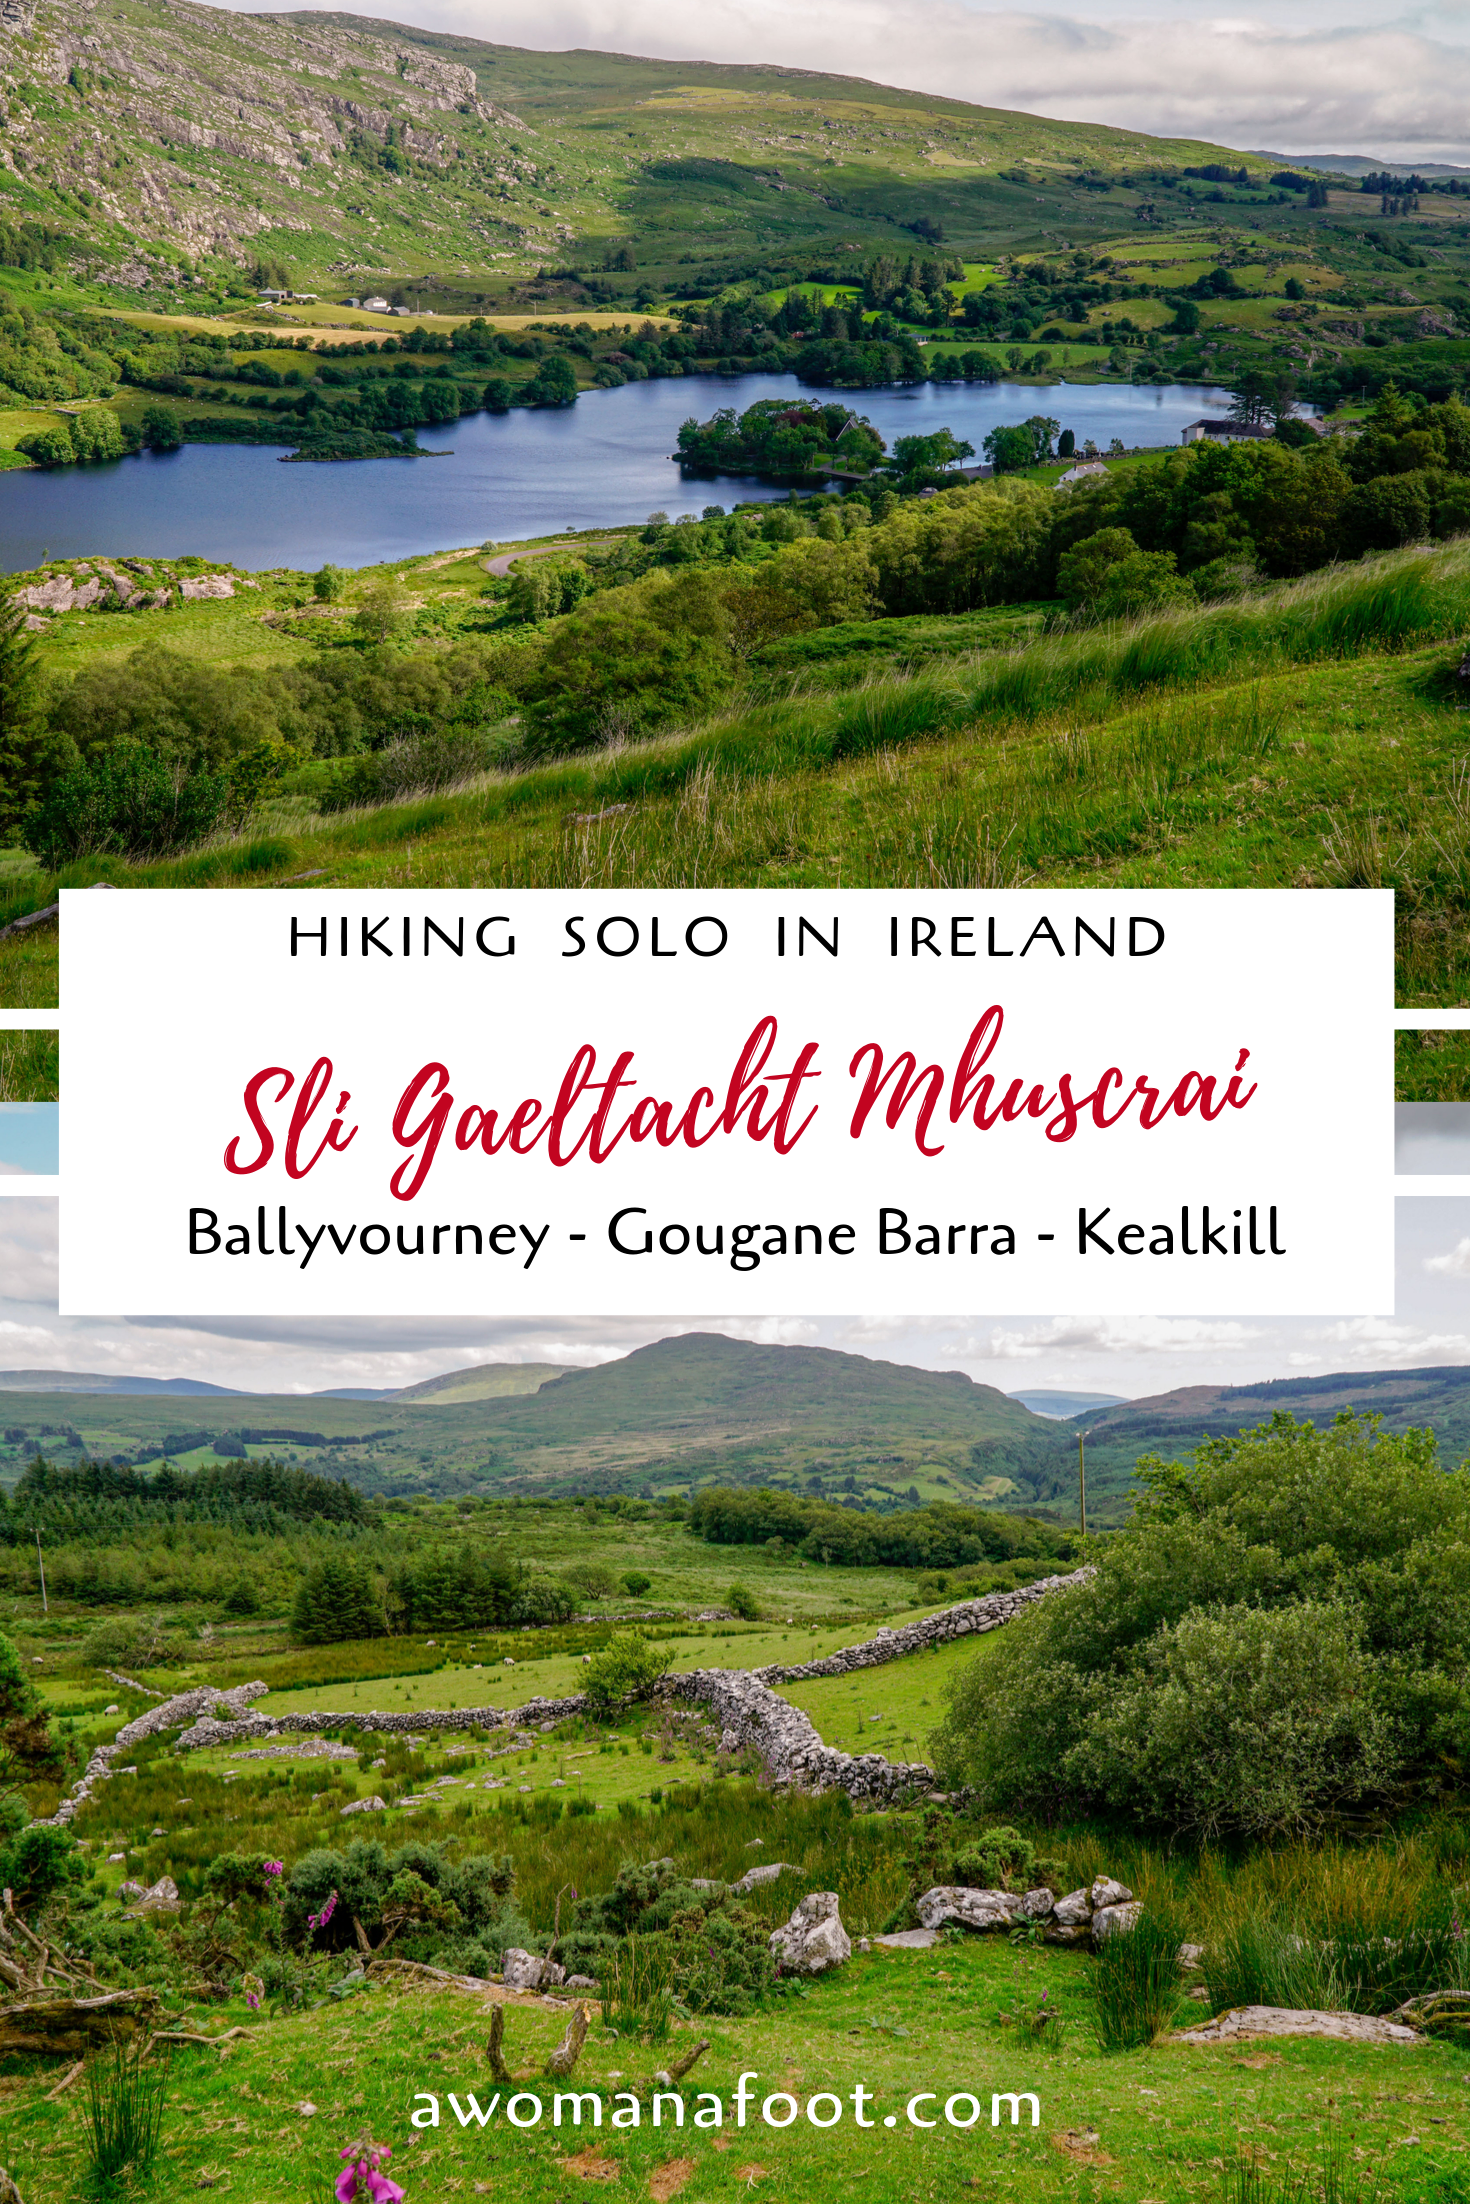 From Ballyvourney to Kealkill - stunningly beautiful hiking trail in Cork, Ireland. Check out the 2nd part of the fantastic Sli Gaeltacht Mhuscrai trail @ awomanafoot.com! Hiking trails in Ireland   Hiking solo in Ireland   Active holidays in Europe   European long-distance walking   British Isles   #hiking #Ireland #Cork #FemaleSolo #Trail #IrishDestination #Adventure